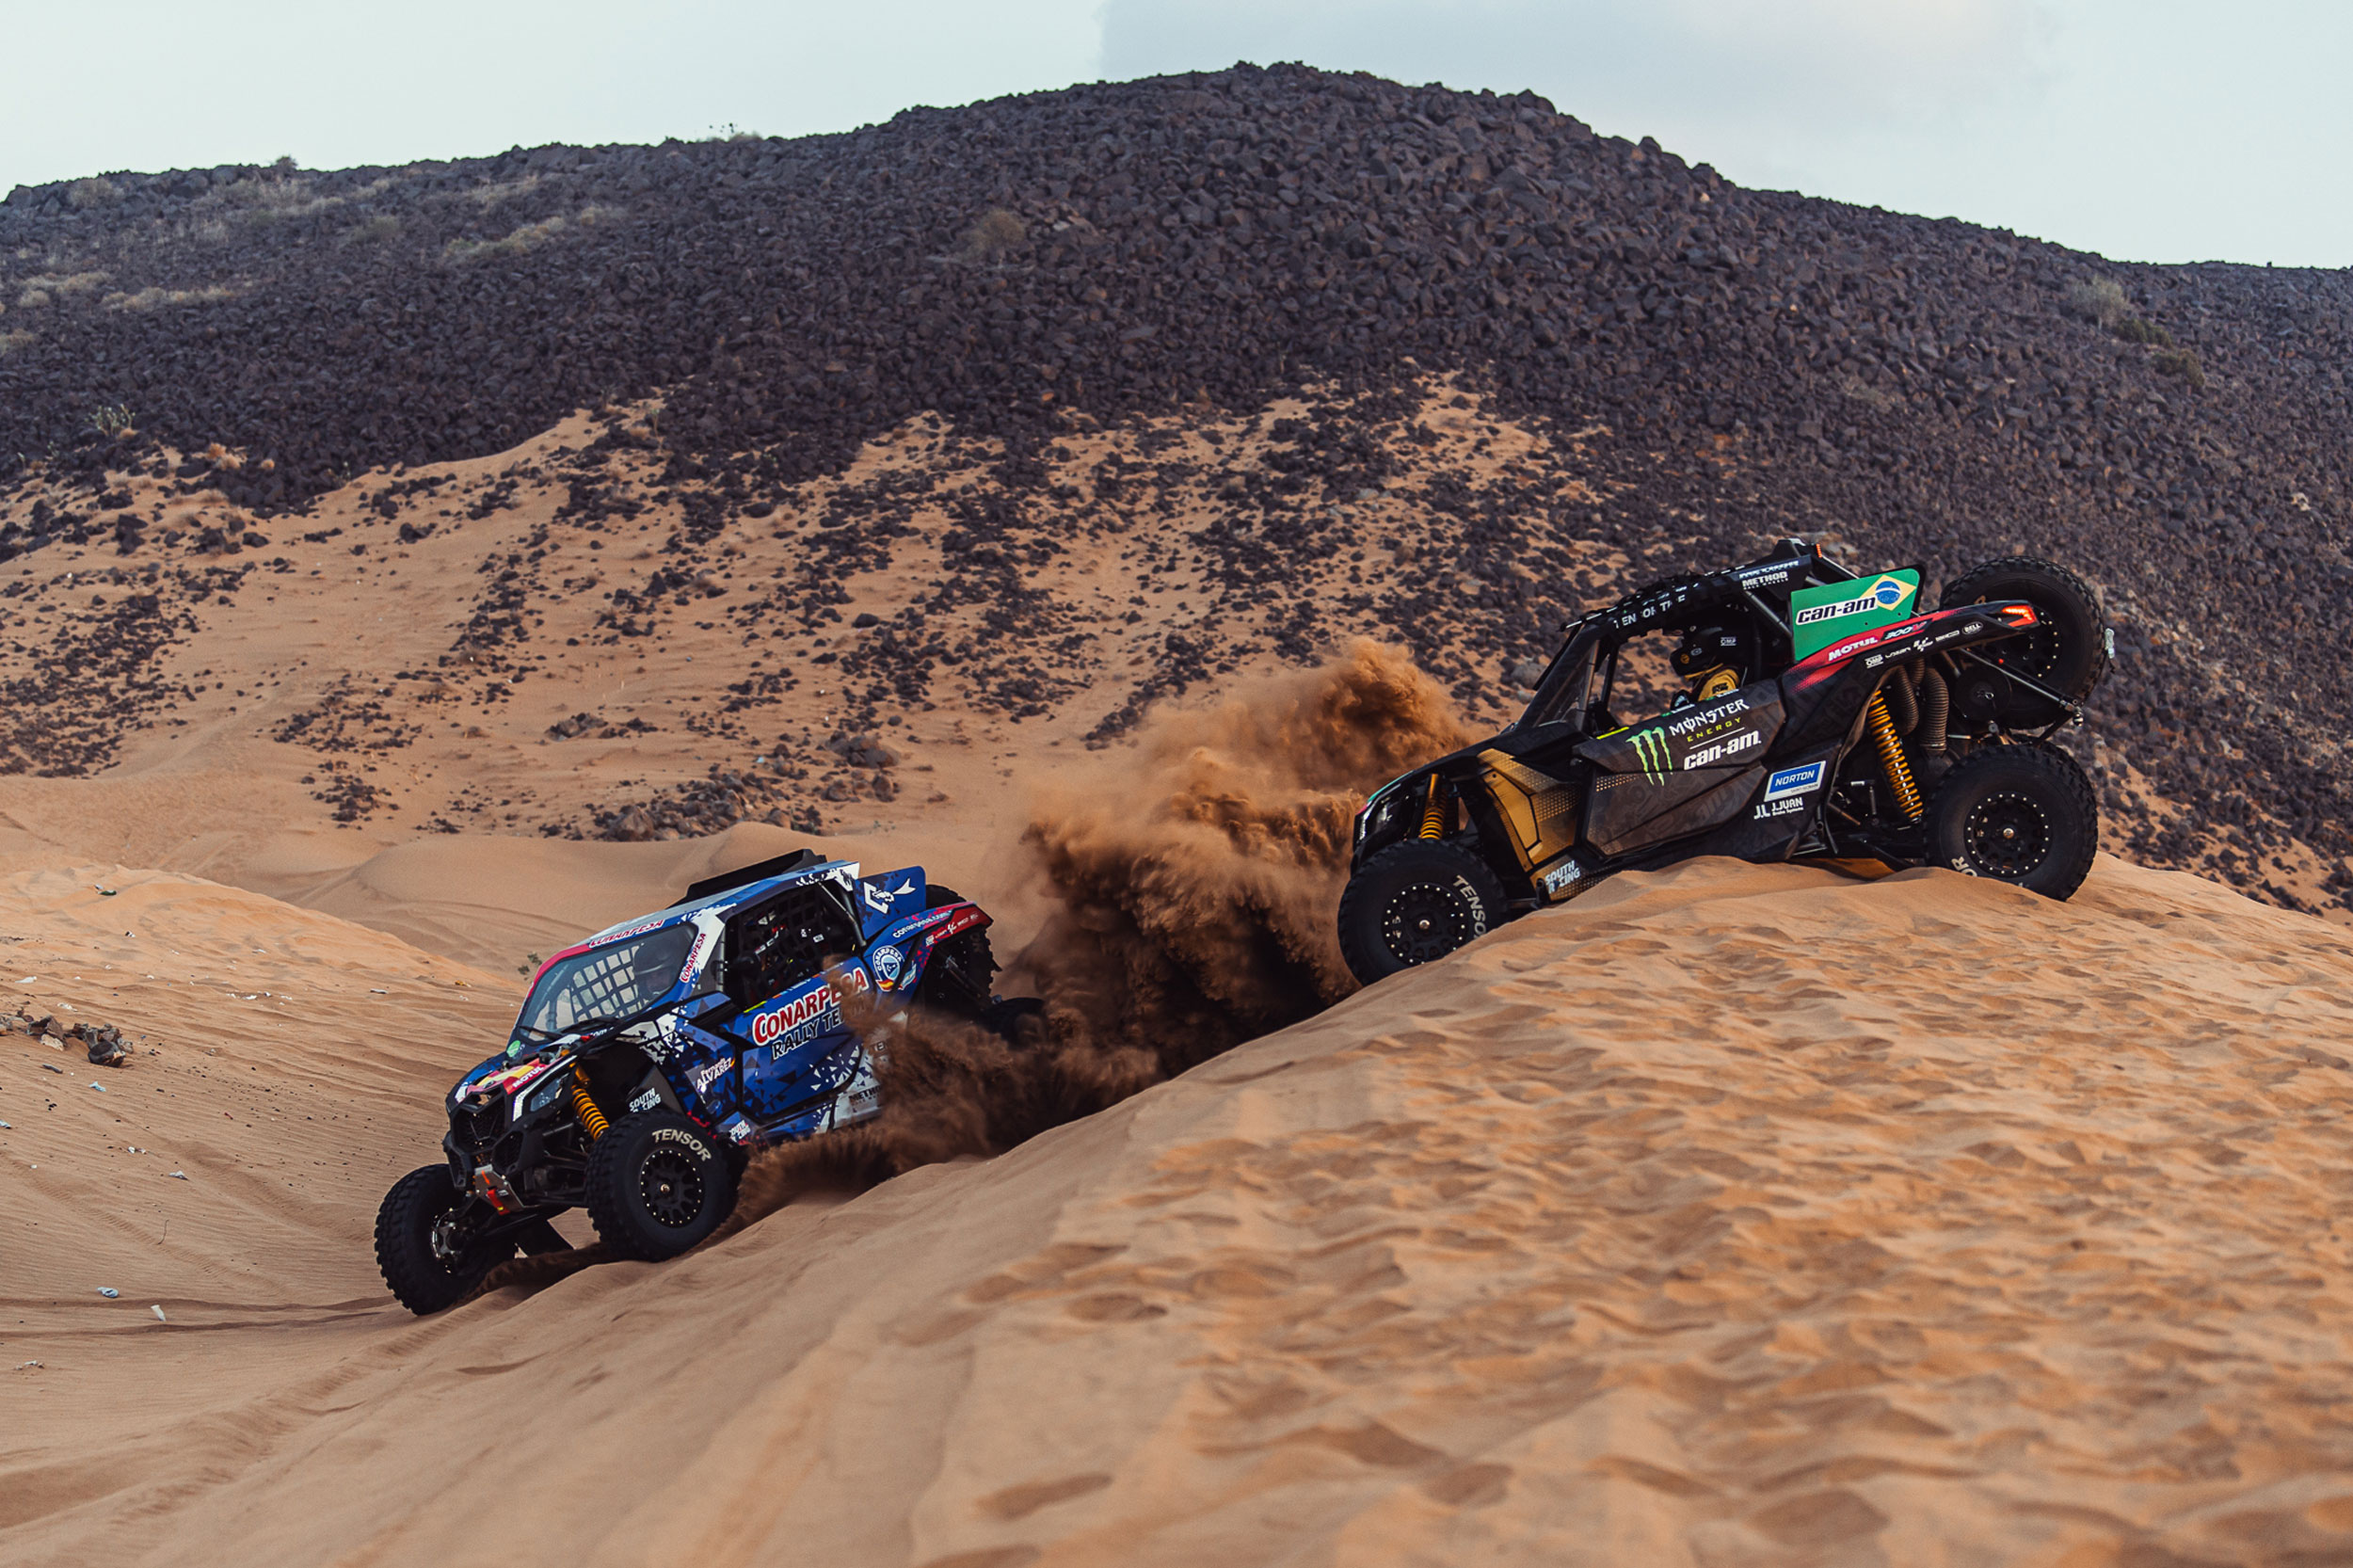 Dakar Can-Am 2021 Race